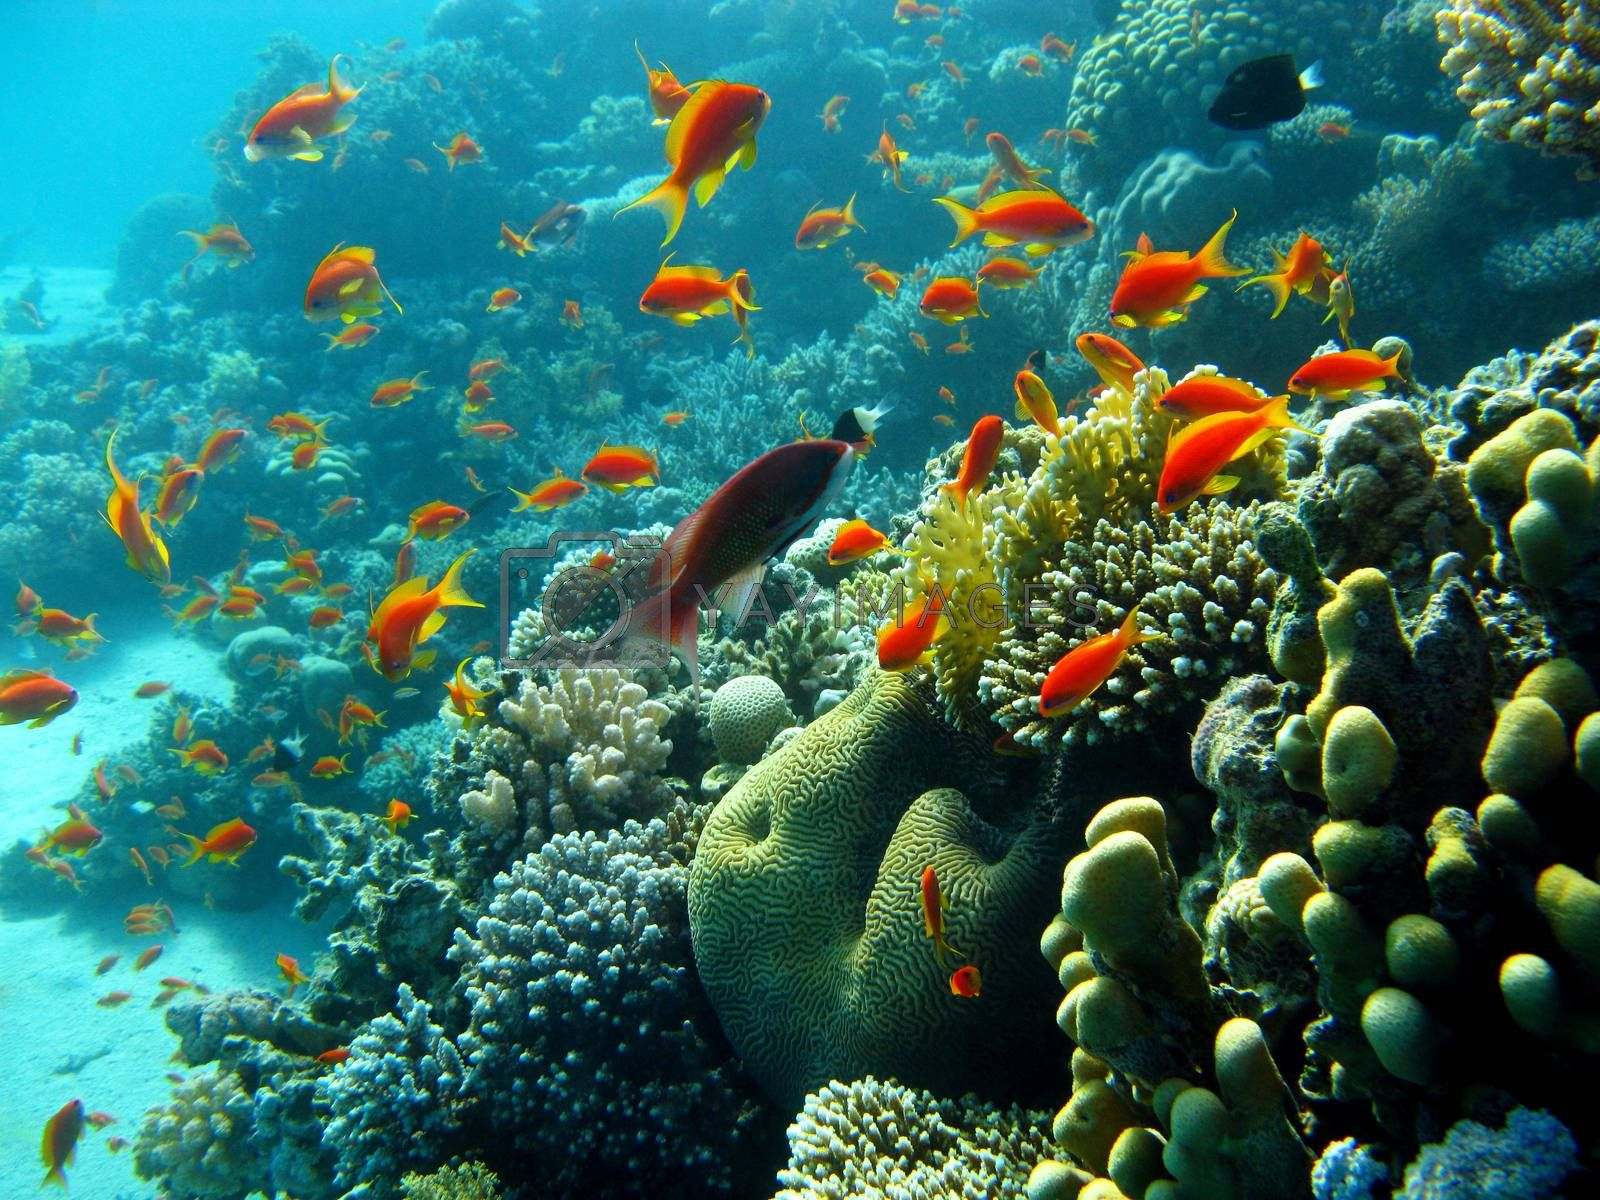 Royalty free image of coral reef with orange fishes anthias at the bottom of tropical sea on blue water background by mychadre77